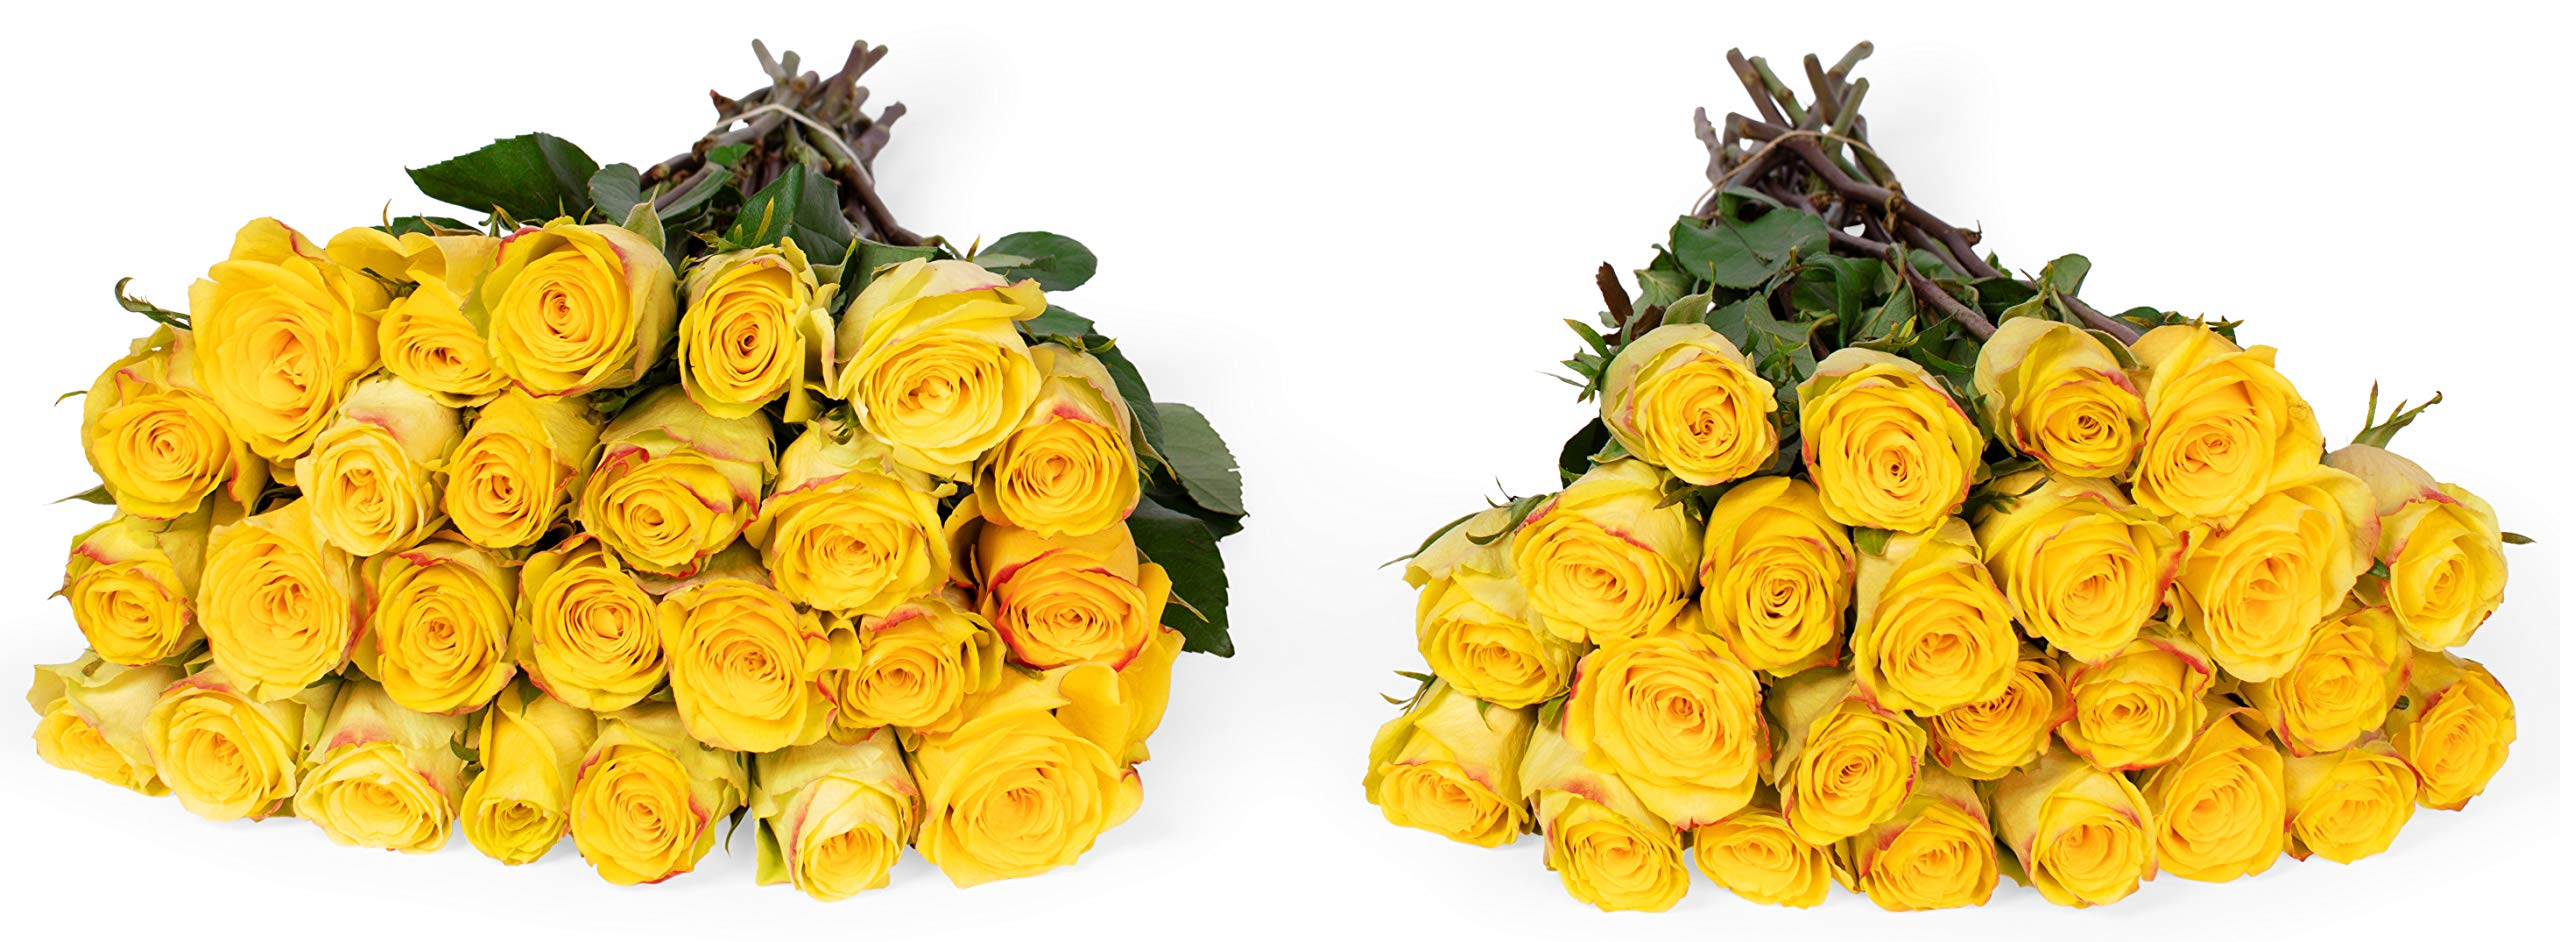 Benchmark Bouquets 50 Yellow Roses Farm Direct (Fresh Cut Flowers) by Benchmark Bouquets